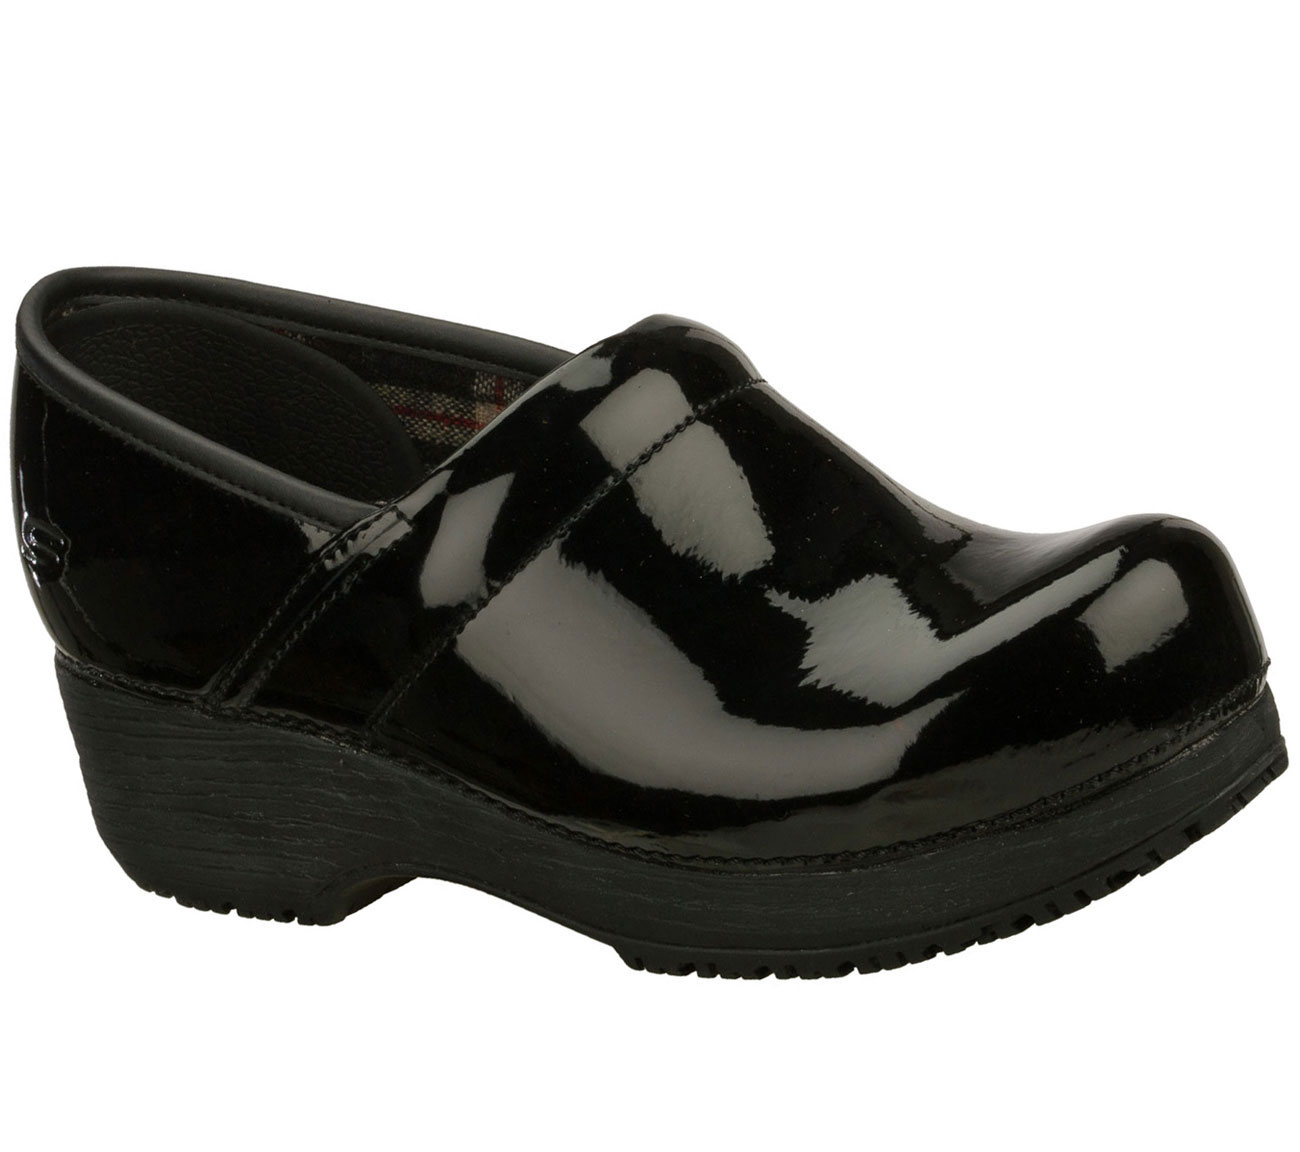 Clarks Sugar Spice wide fitting shoes for women